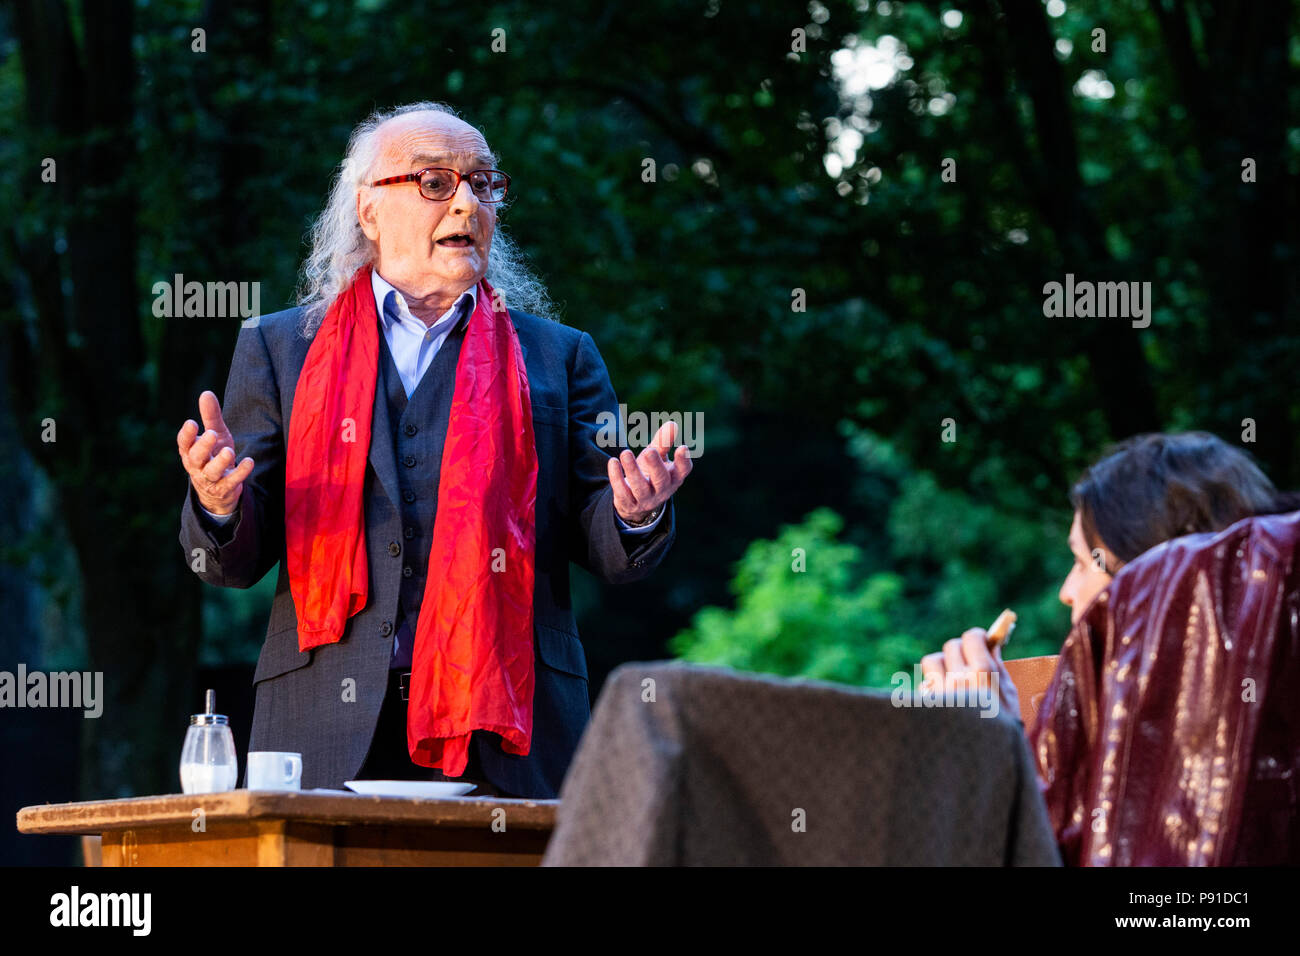 Mülheim an der Ruhr, Germany. 13 July 2018. Roberto Ciulli performing. Theater an der Ruhr perform The Art of Comedy by Eduardo de Filippo during the 2018 Weiße Nächte season, a series of free open-air performances at Raffelbergpark. Photo: Bettina Strenske/Alamy Live News - Stock Image